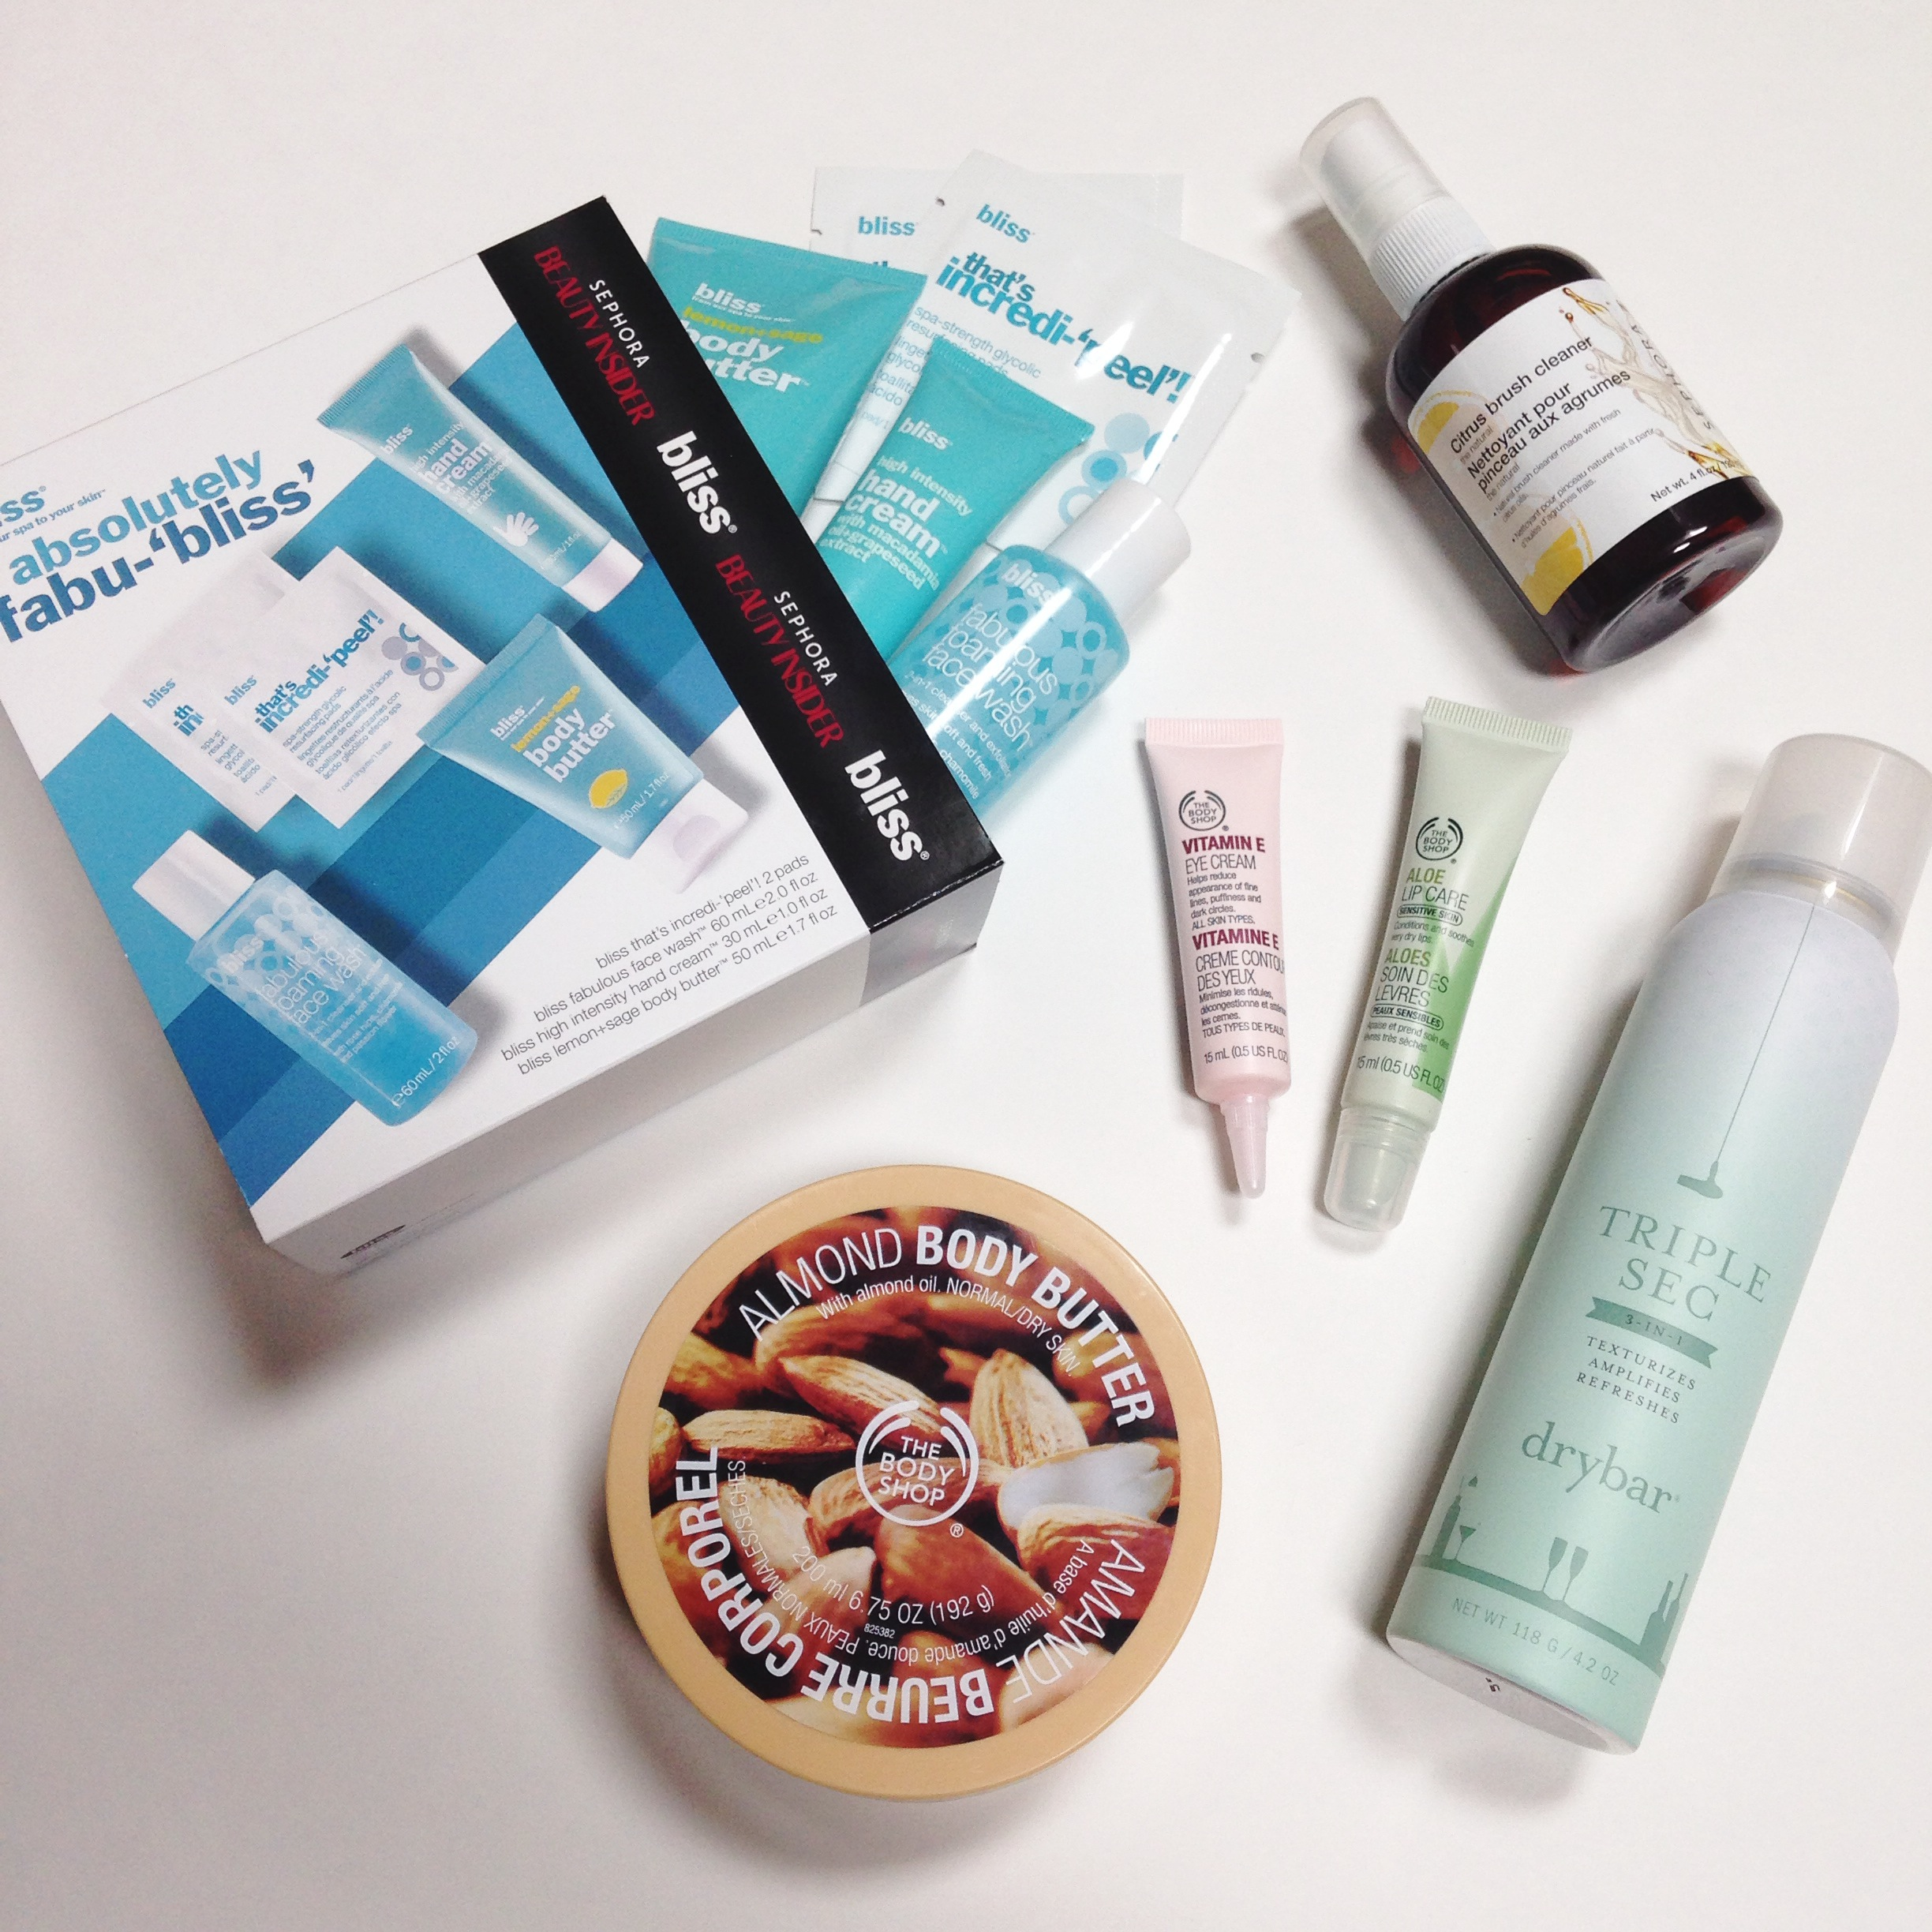 Sephora & The Body Shop Haul